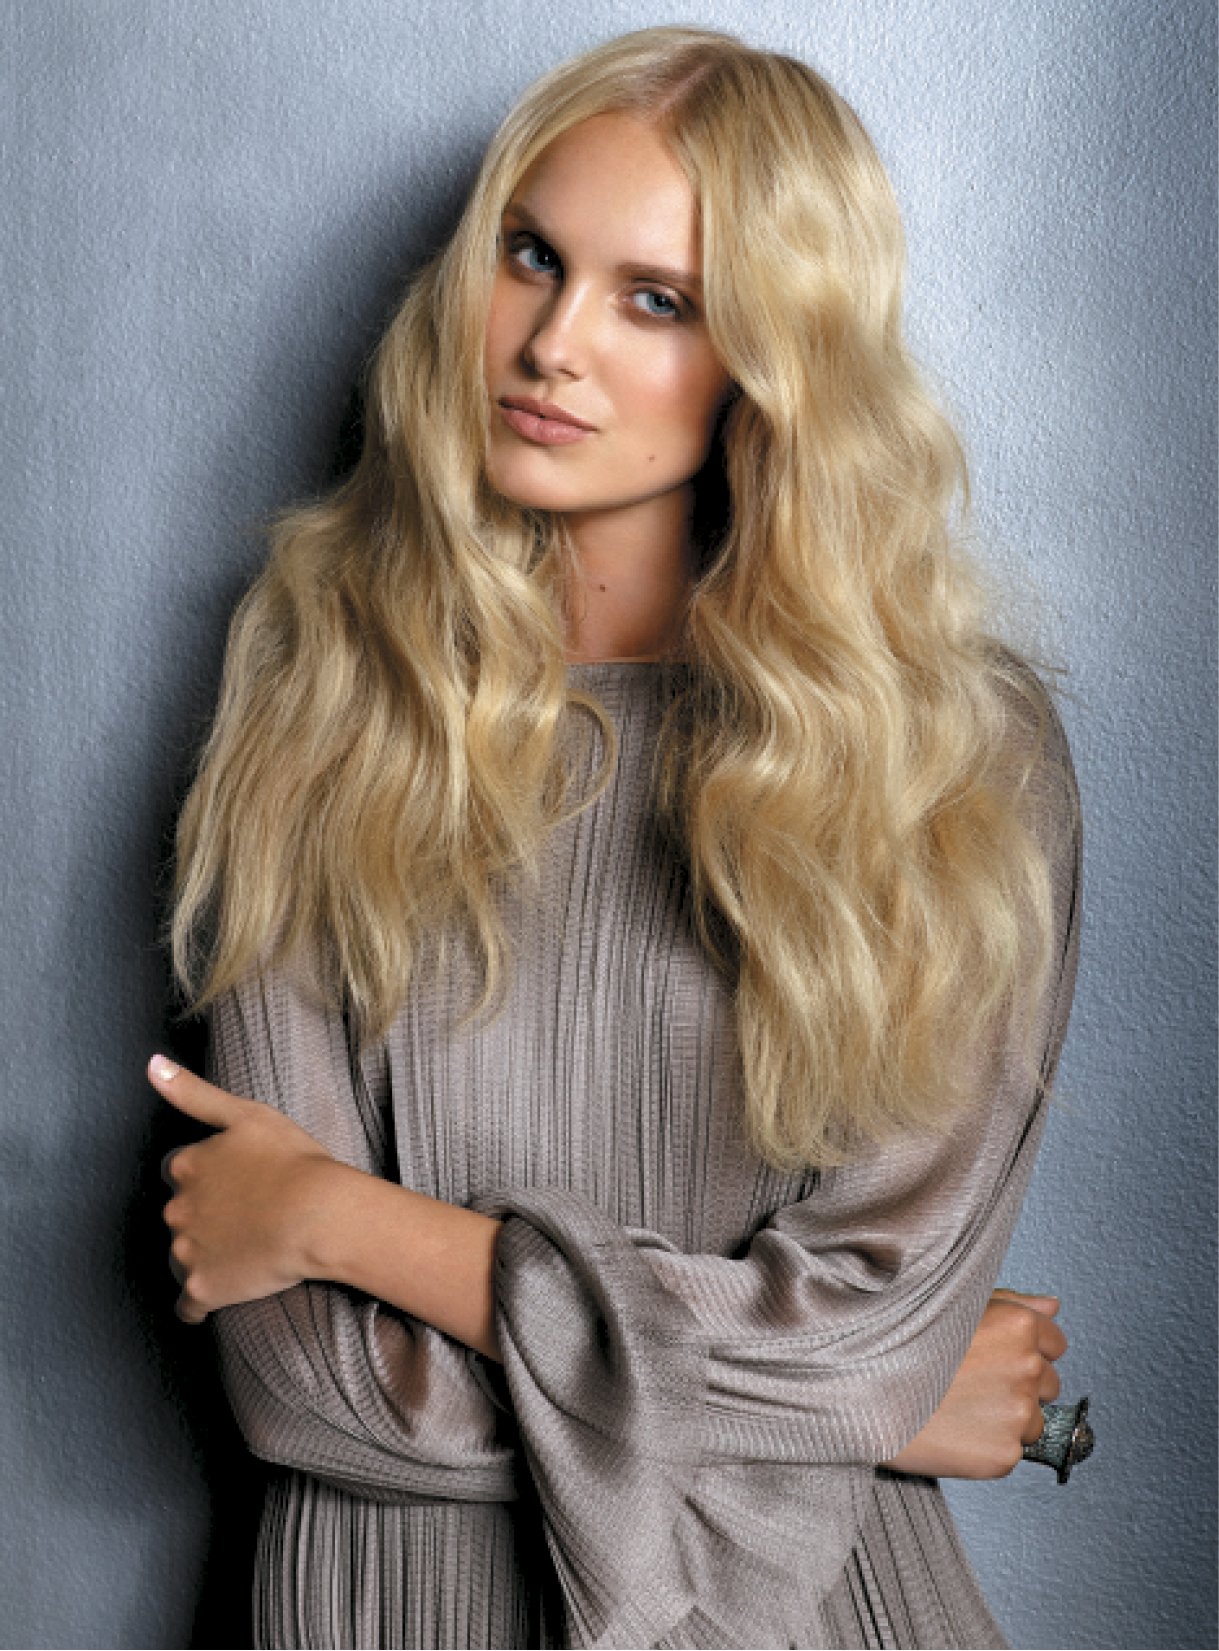 After prepping strands with Foaming Volumizer and blow-drying them, Giannandrea used a small curling iron to wave the hair in the midsections, leaving out the ends. He applied Volumizing Dry Shampoo Spray to create softness in the crown, then worked a bit of Whipped Detailing Cream into strands before using an iron to smooth the ends. Dress: Maria Lucia Hohan; Ring: M.C.L. by Matthew Campbell Laurenza